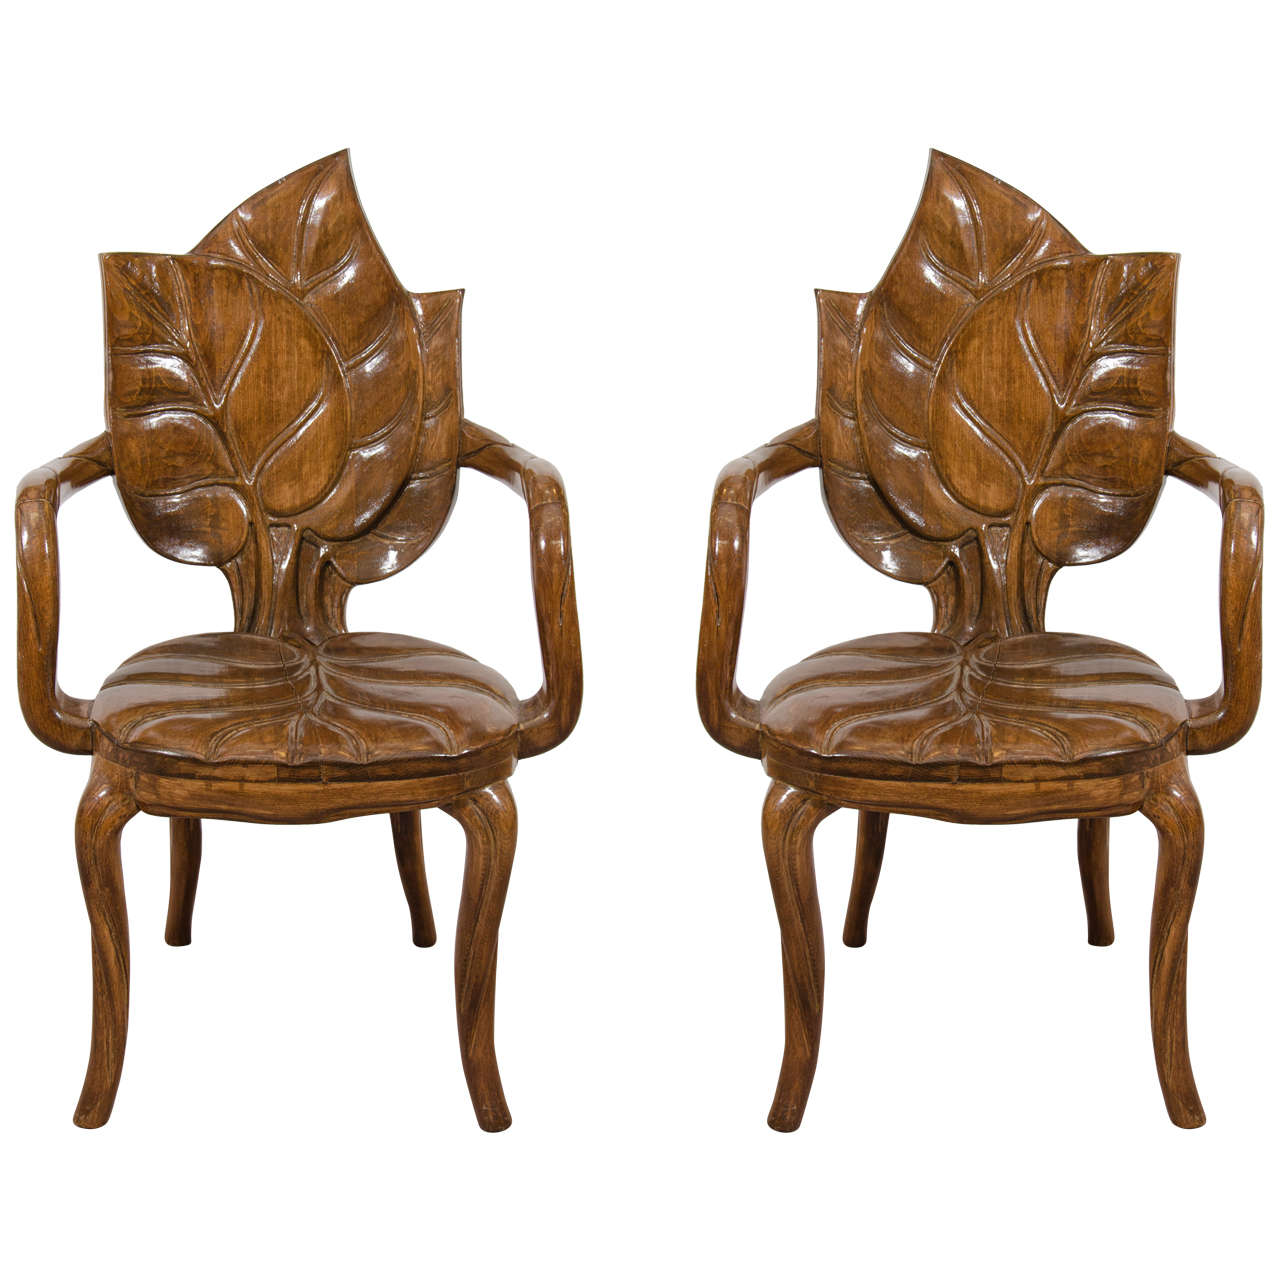 Art Nouveau Style Pair of Sculptural Leaf Motif Armchairs or Side Chairs For Sale  sc 1 st  1stDibs & Art Nouveau Style Pair of Sculptural Leaf Motif Armchairs or Side ...